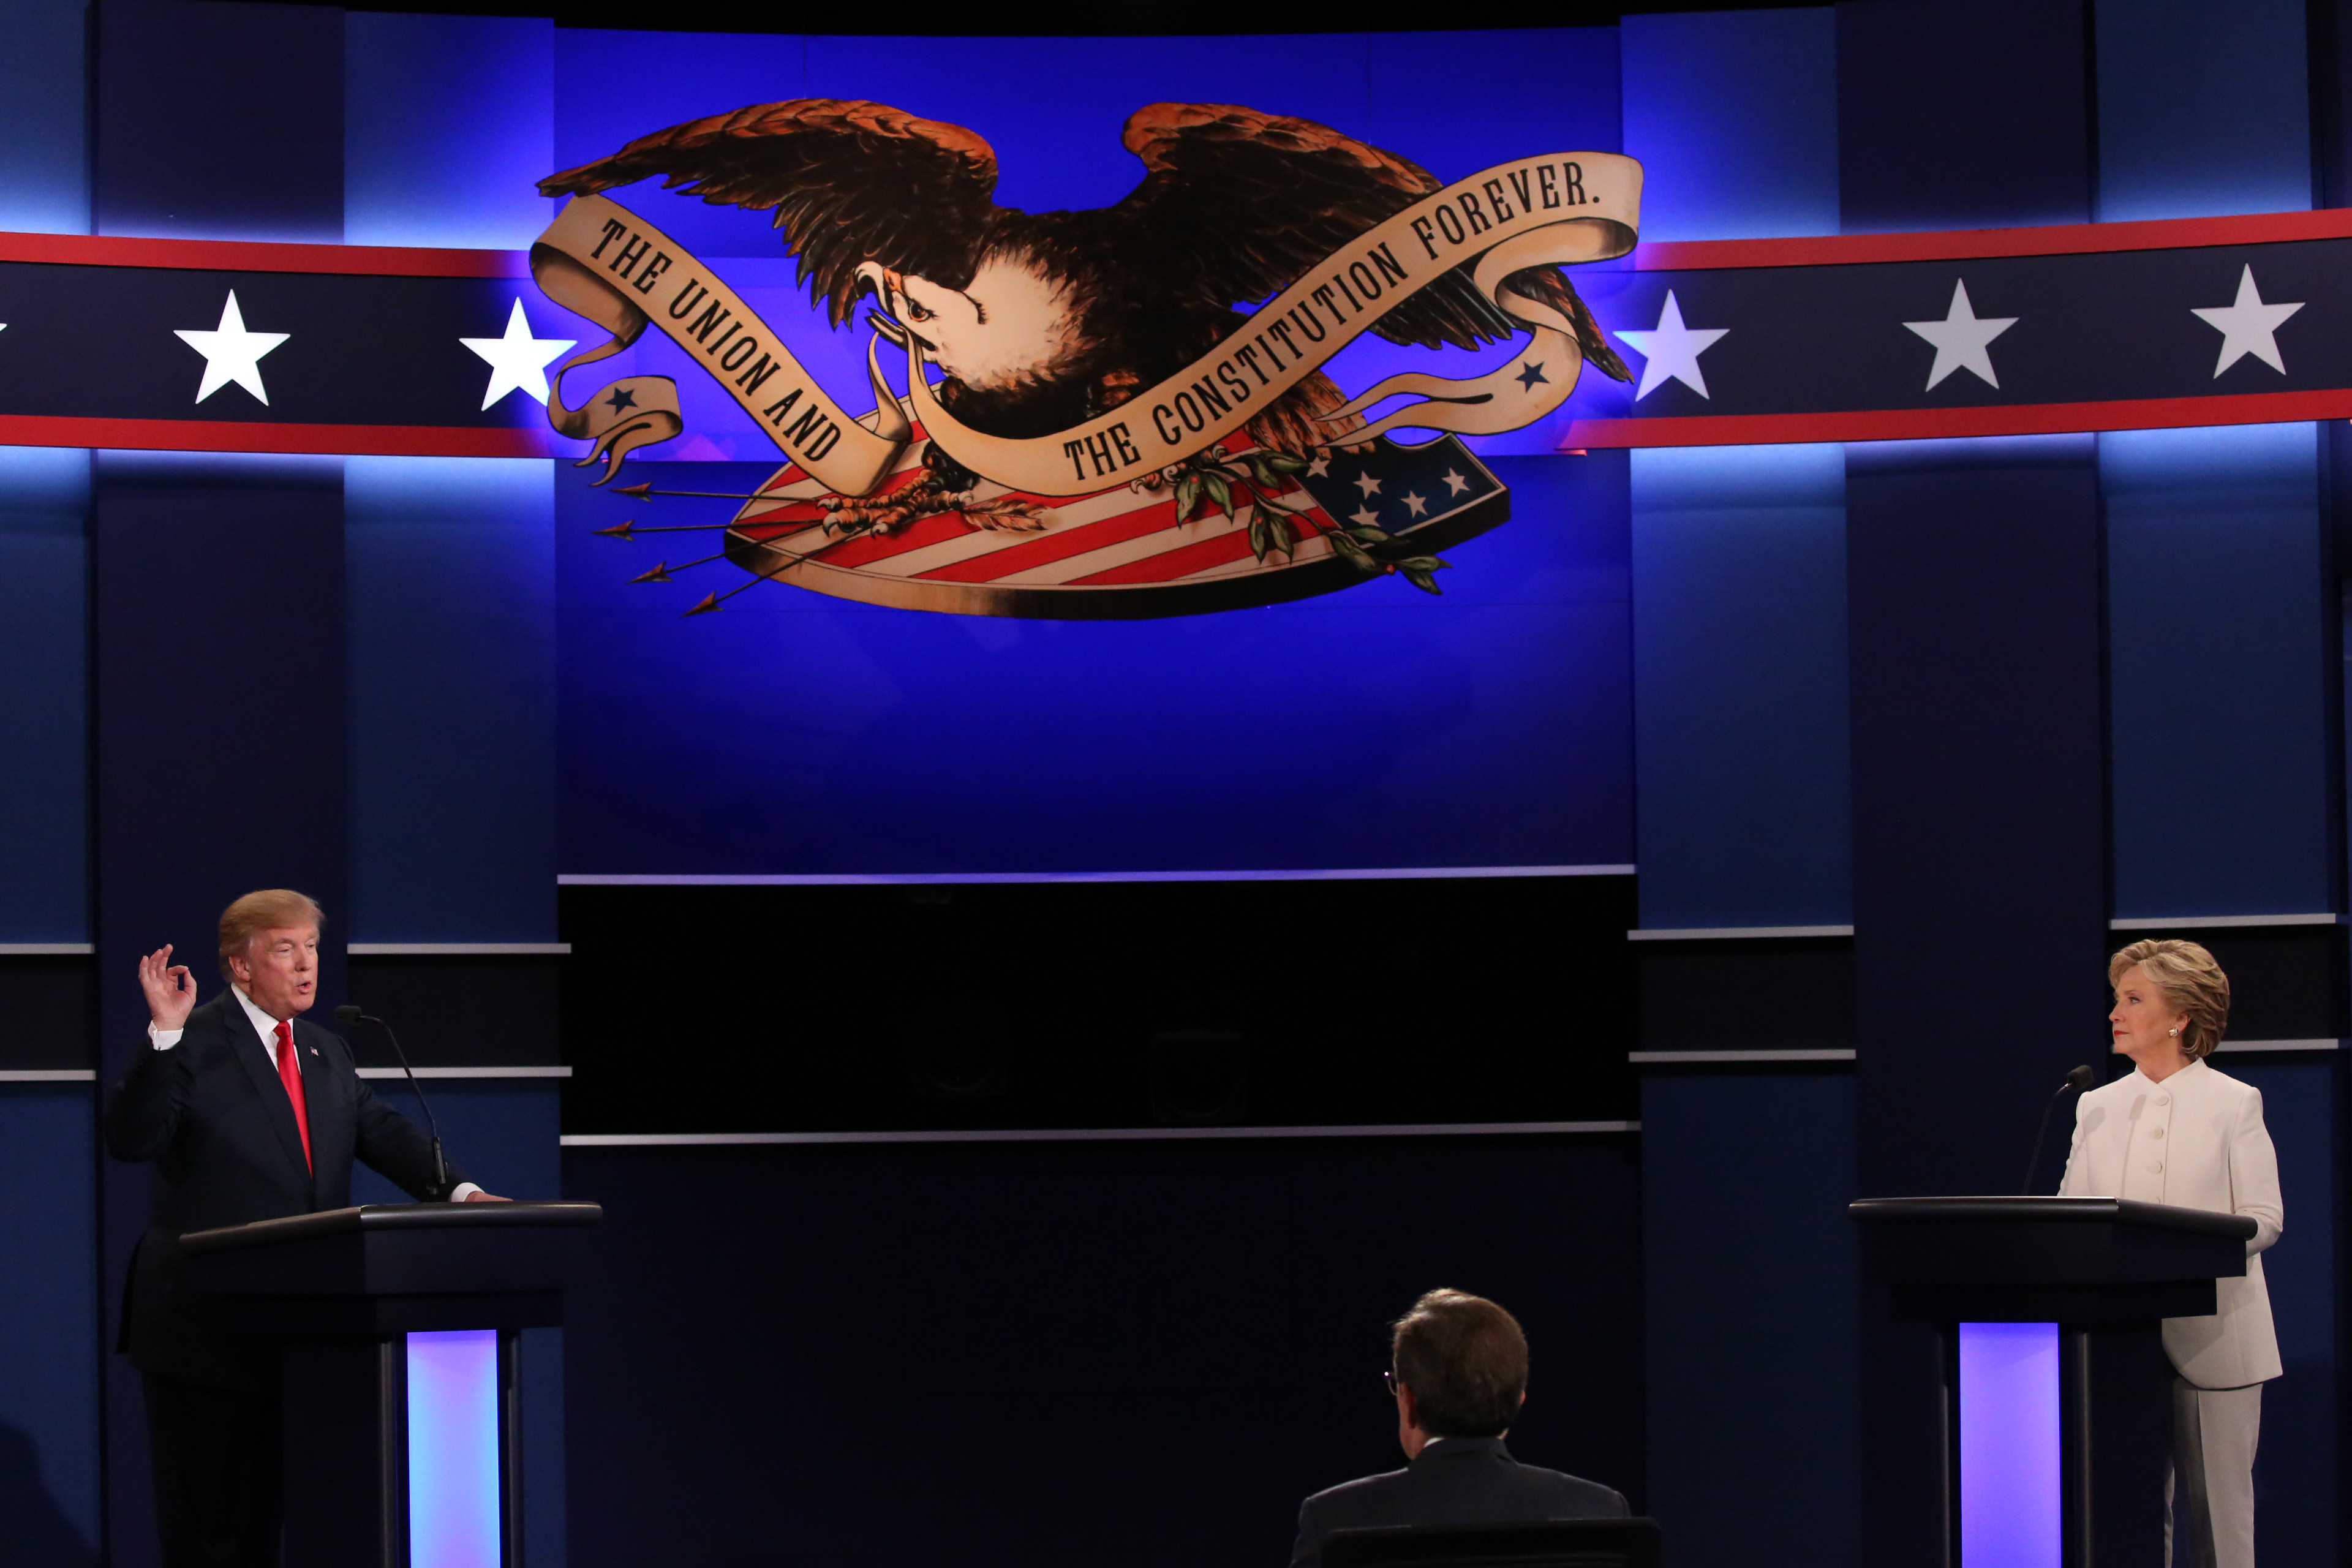 Hillary Clinton looks on as Donald Trump speaks during their presidential debate at the University of Nevada, Las Vegas, Oct. 19, 2016. (Damon Winter/The New York Times)